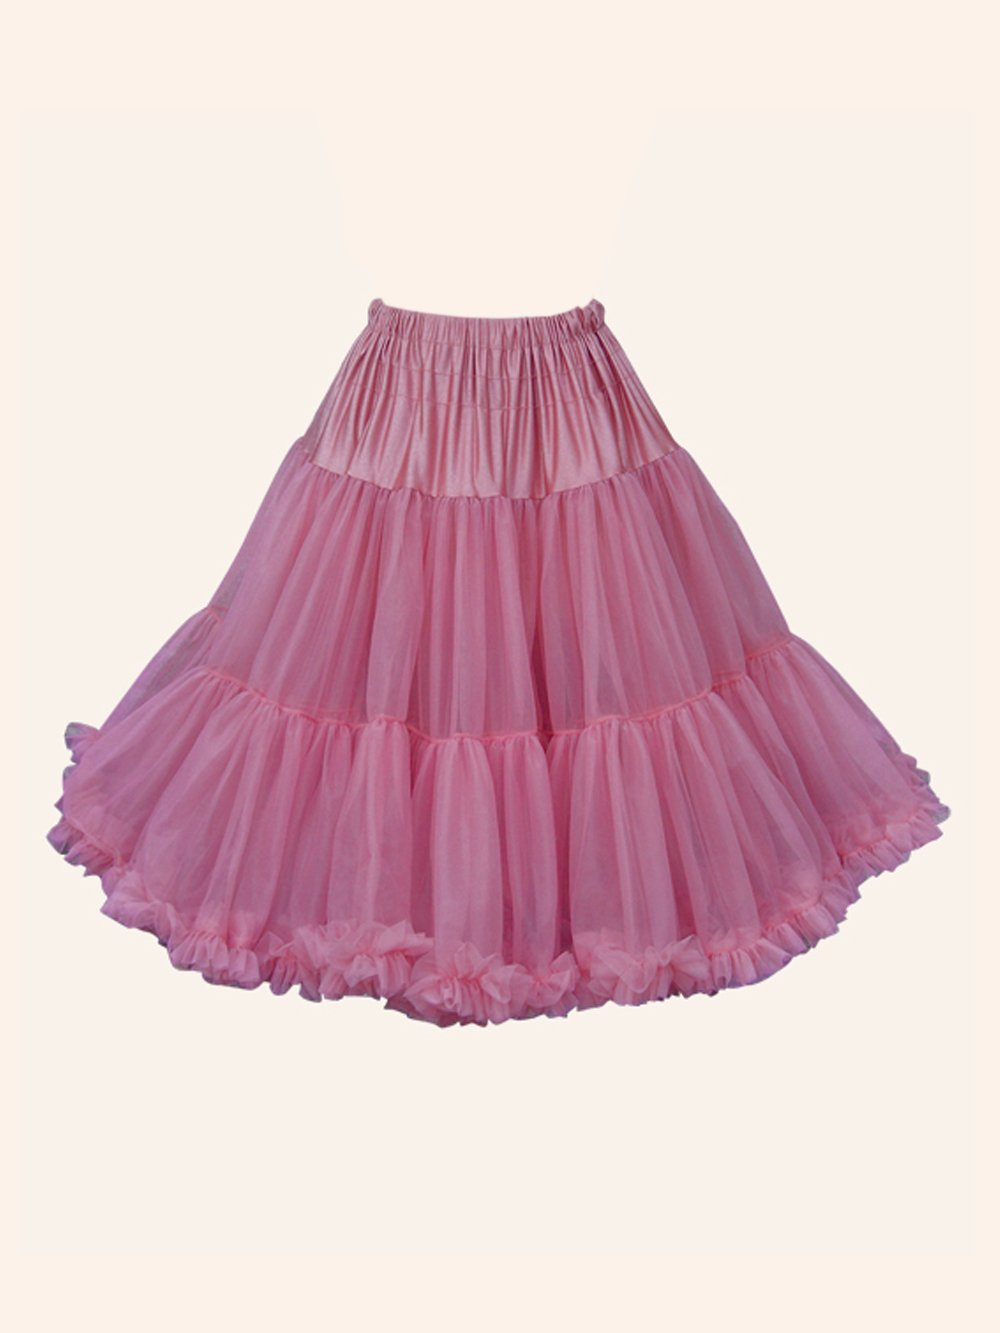 Petticoat Dusky Pink From Vivien Of Holloway